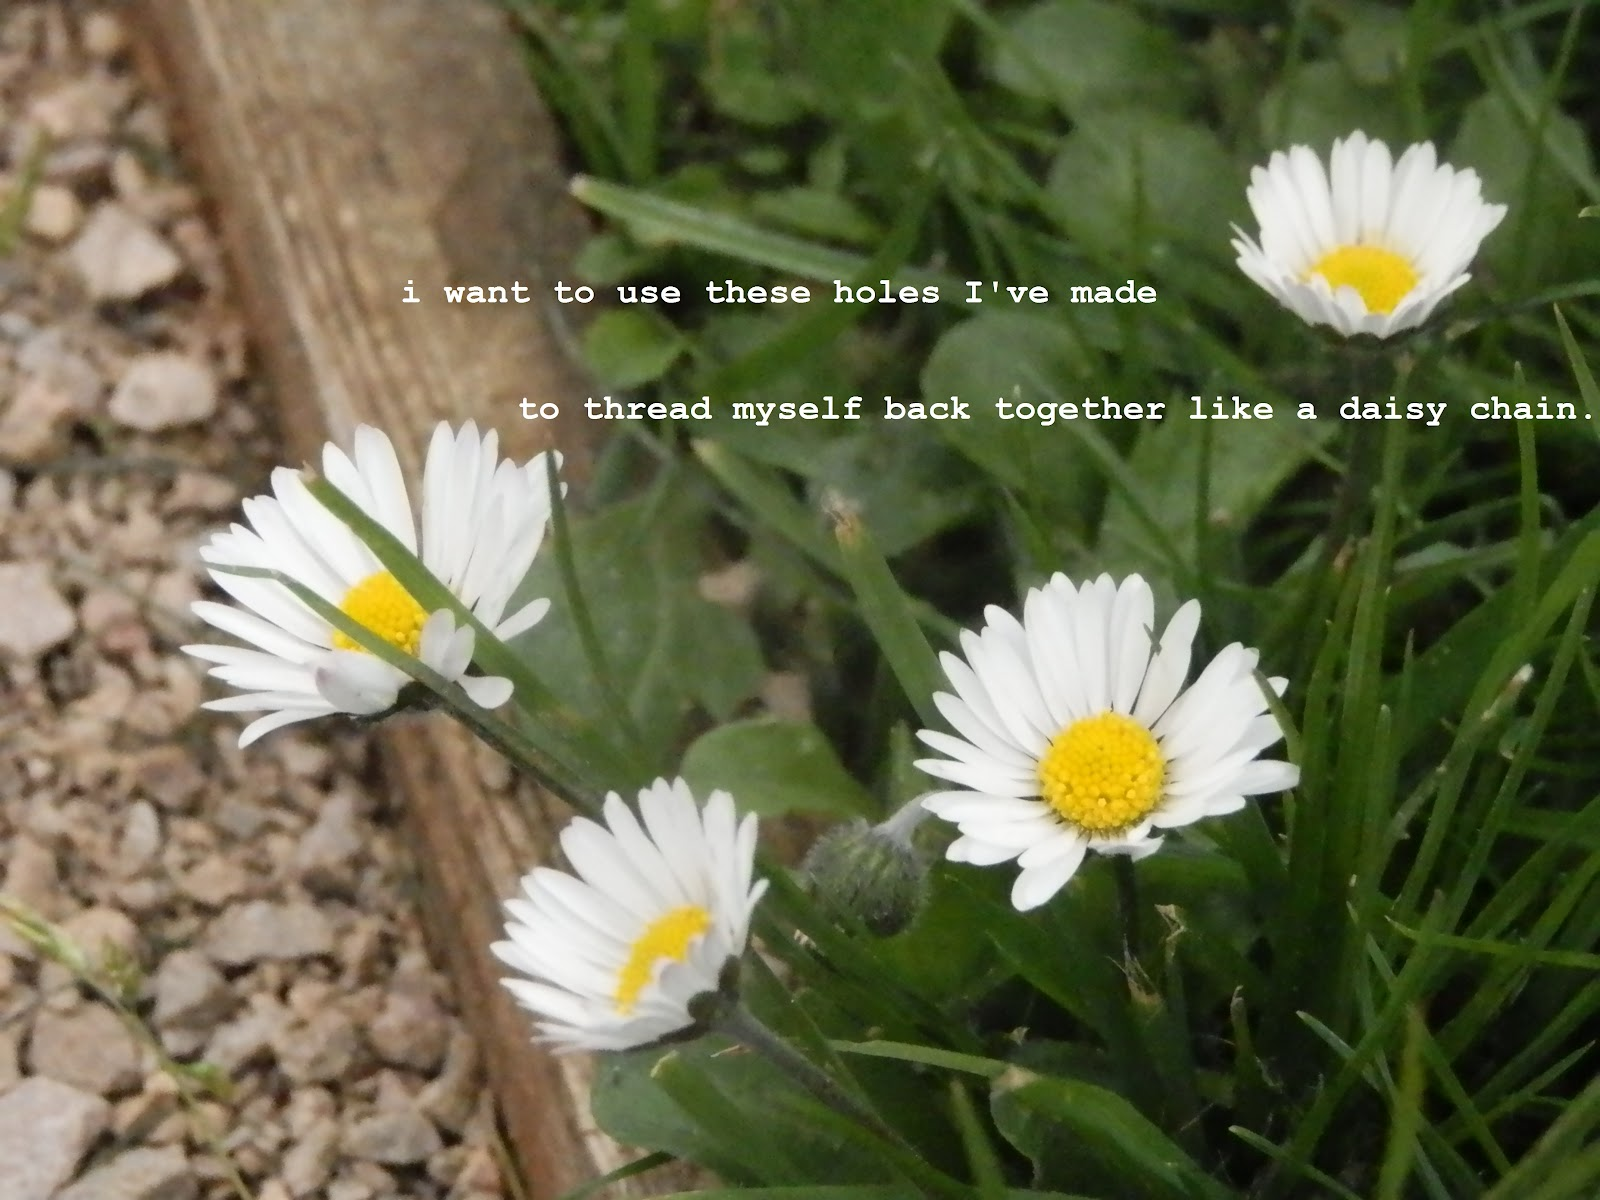 New beginnings image description poem text overlaying four daisies blooming next to a gravel path izmirmasajfo